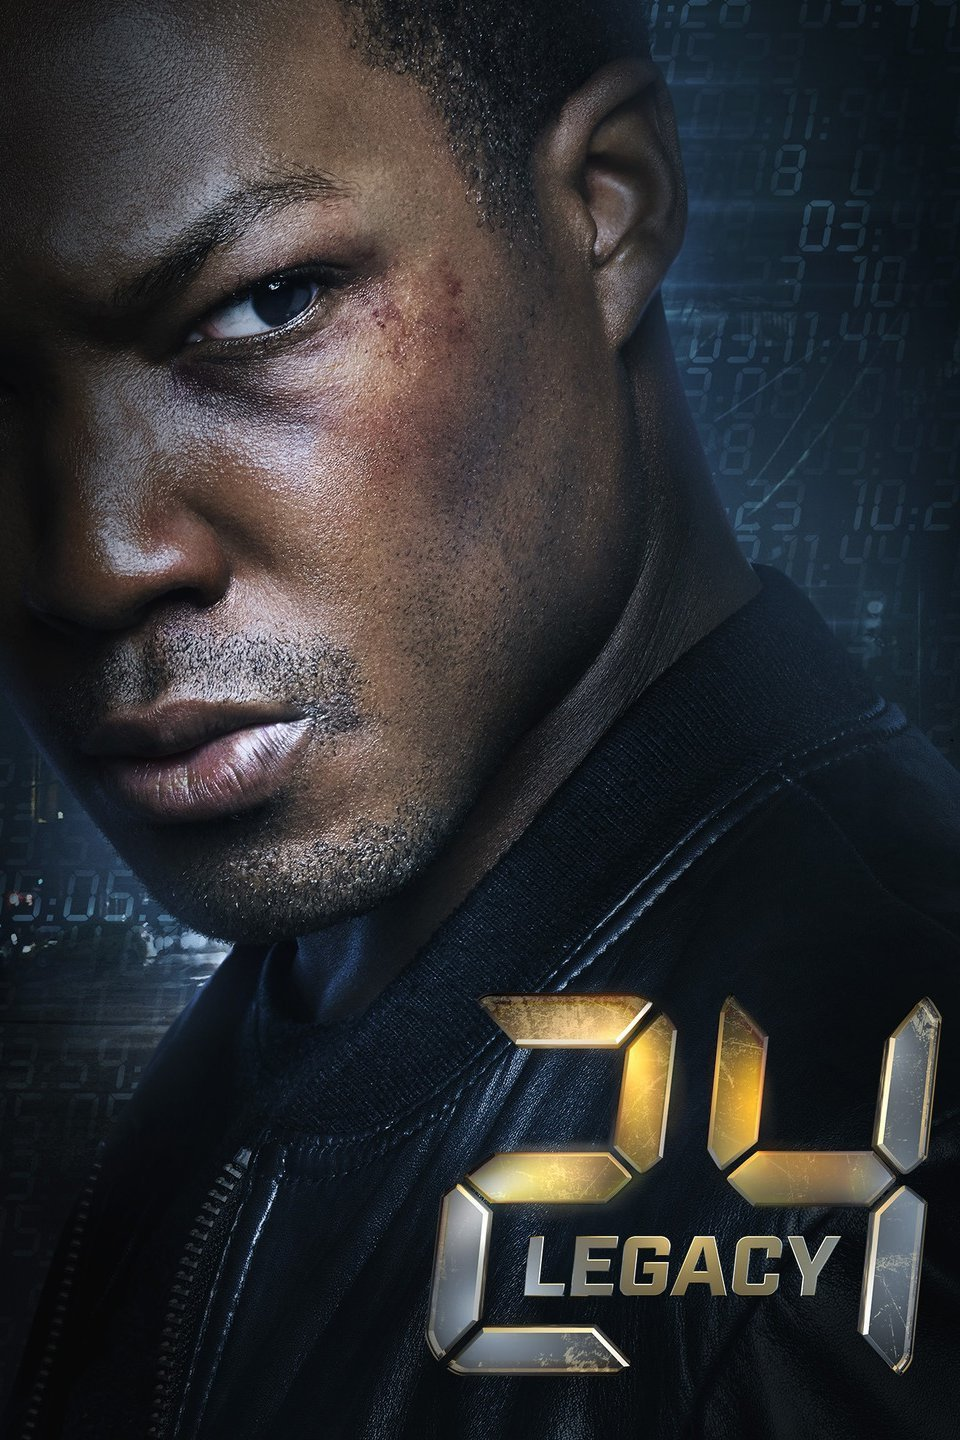 24 Legacy Season 1 Download Complete HDTV Micromkv